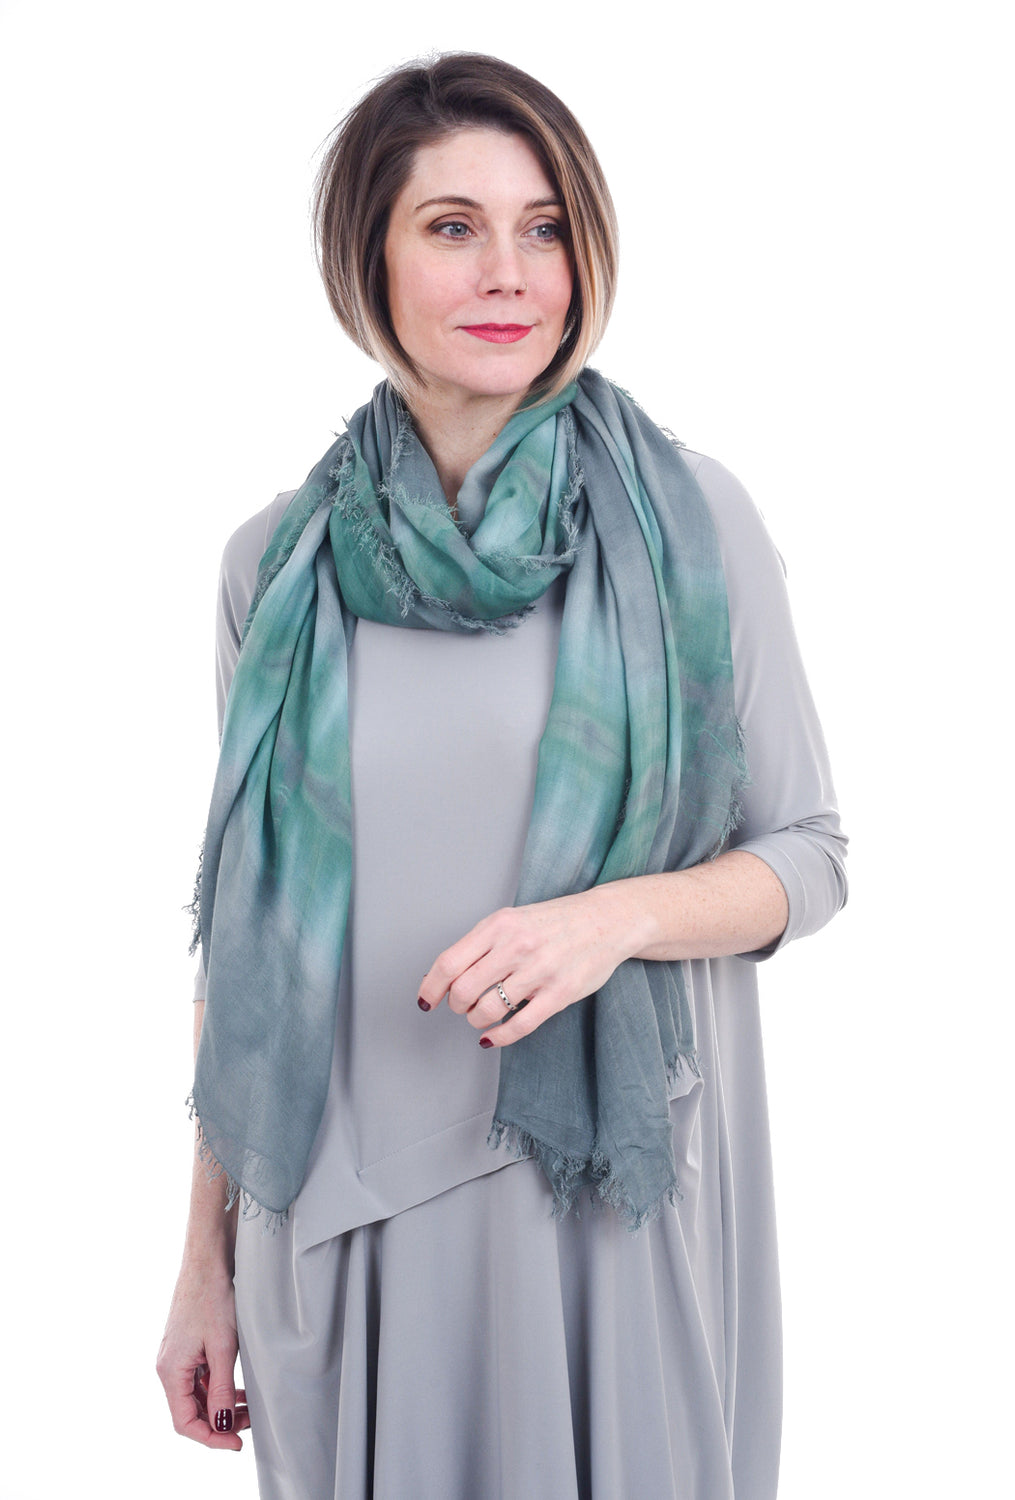 Blue Pacific Horizontal Tie-Dye Scarf, Gray One Size Gray